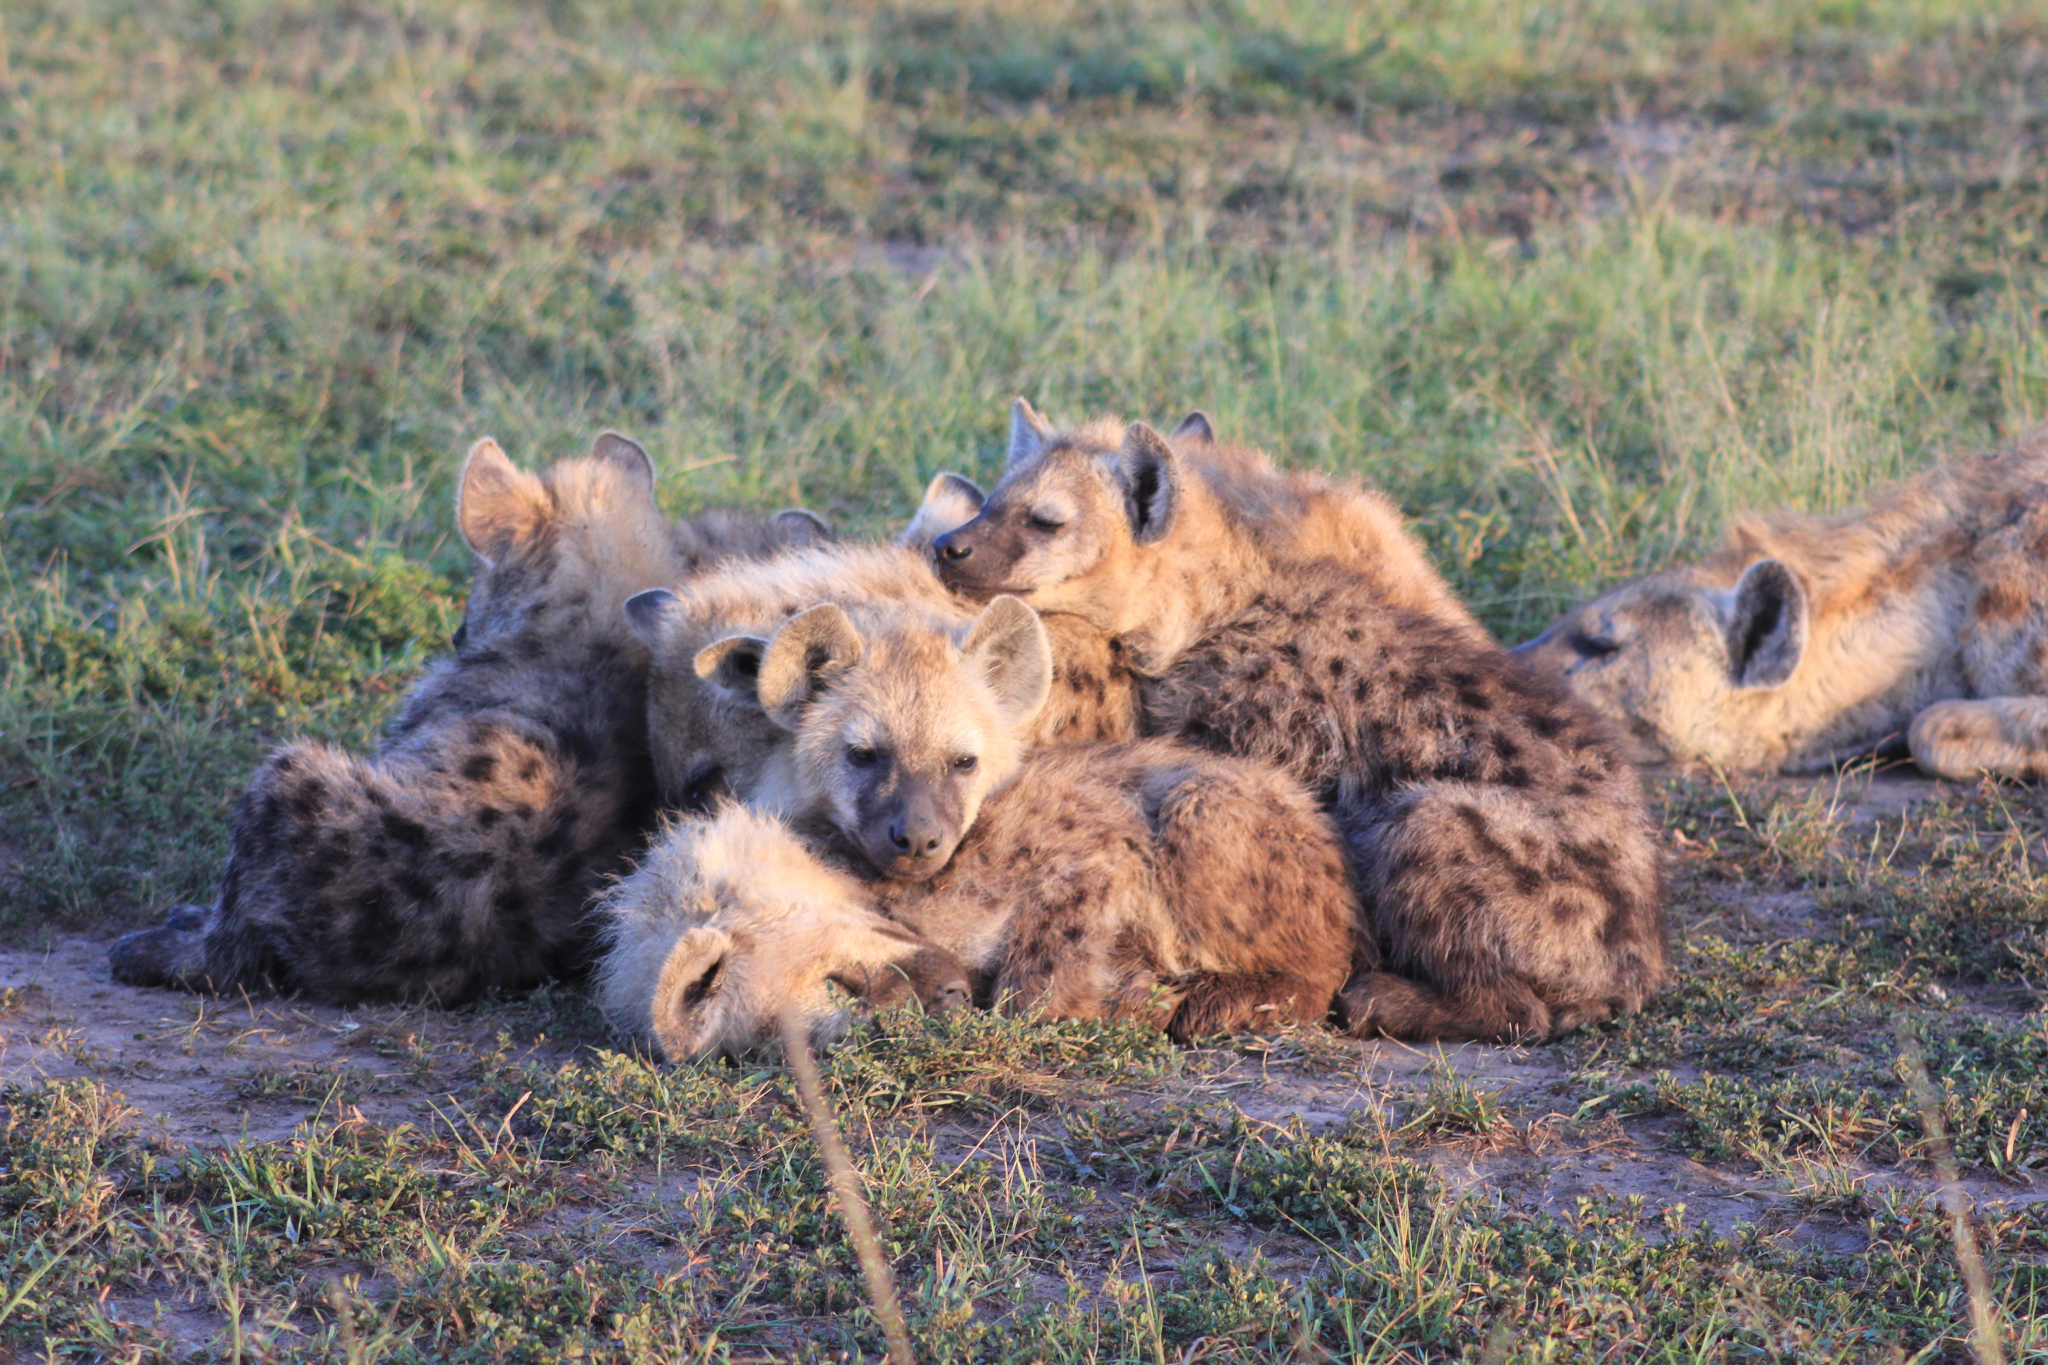 A pack of Hyena cubs